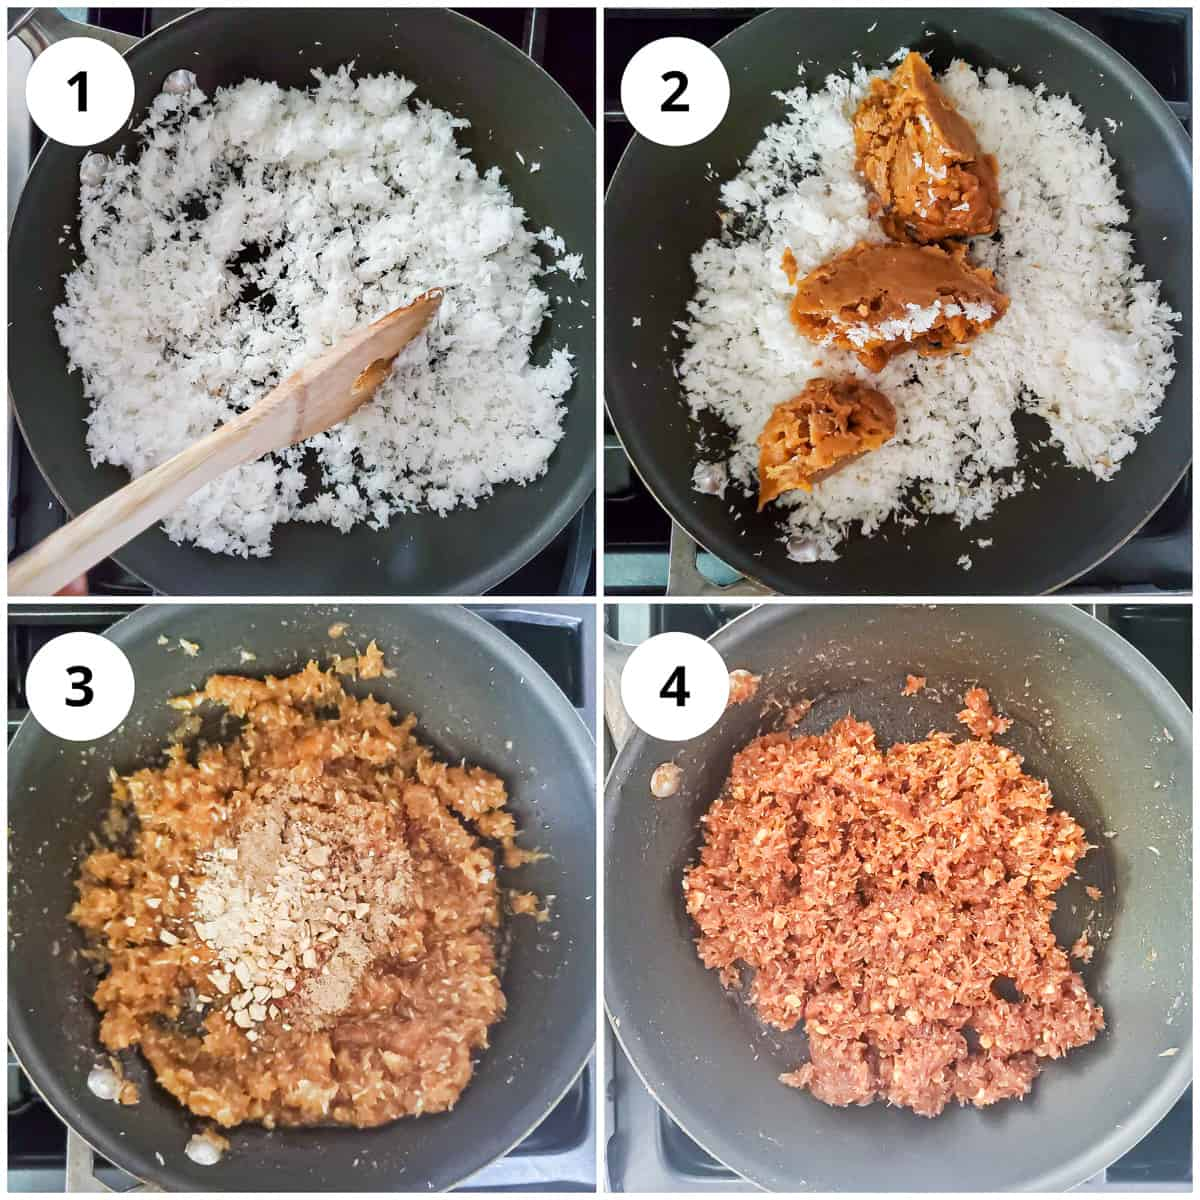 Steps for roasting the coconut, mixing jaggery, cardamom, cashews to make the filling